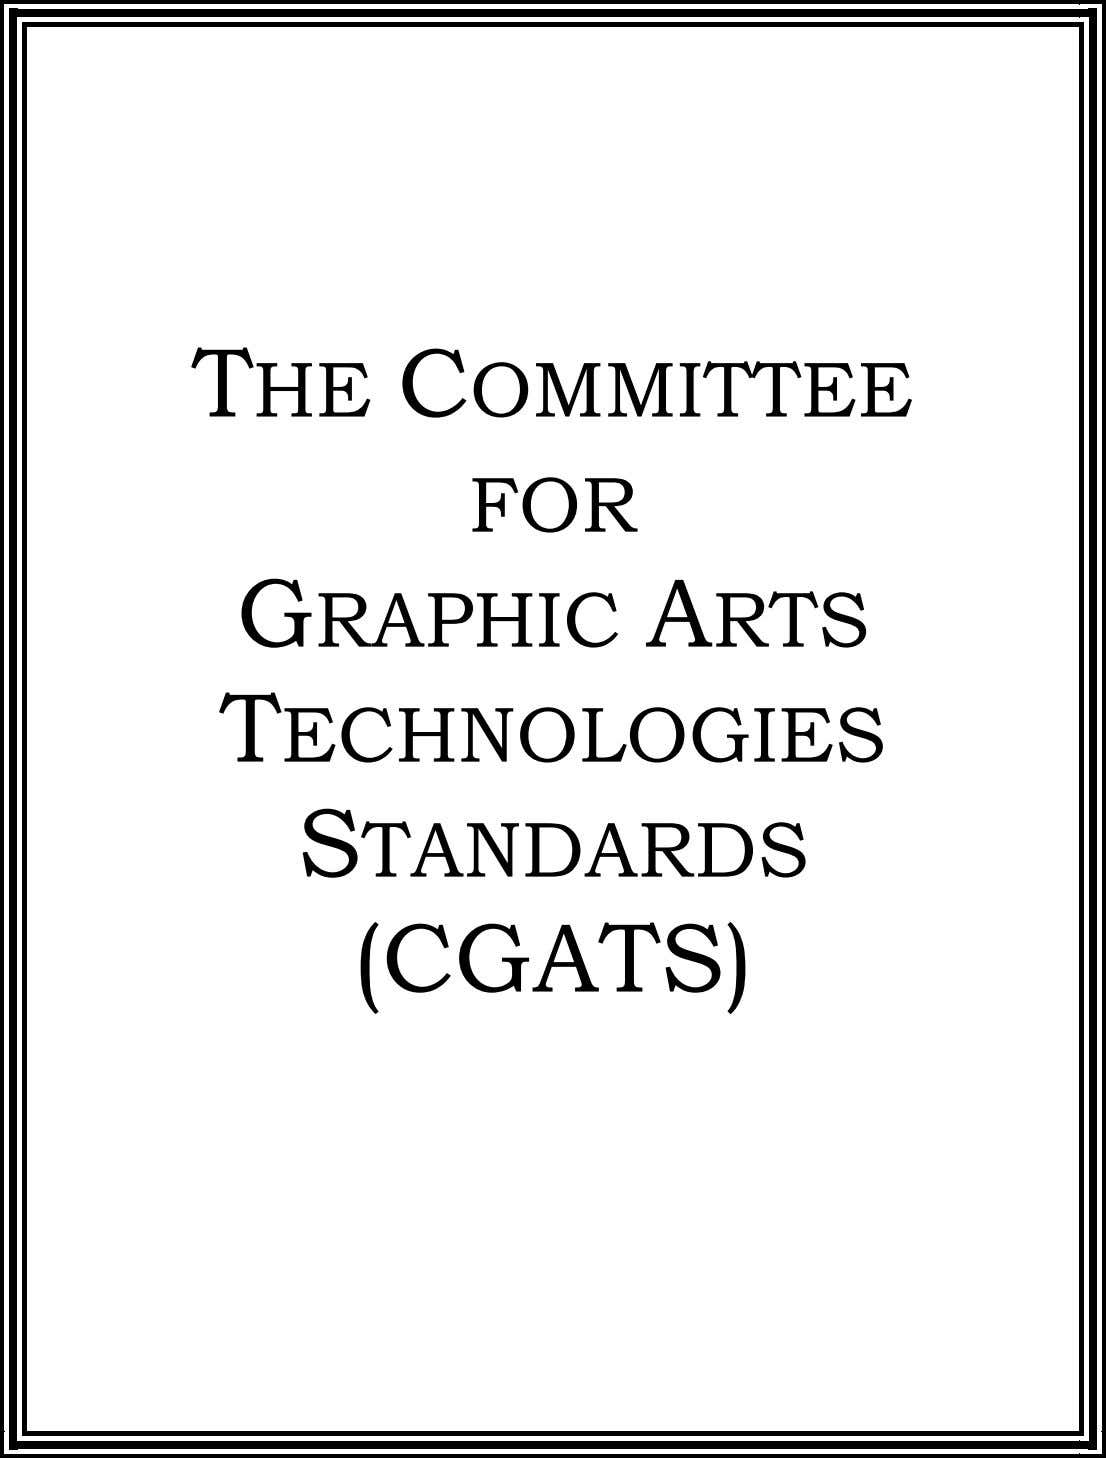 THE COMMITTEE FOR GRAPHIC ARTS TECHNOLOGIES STANDARDS (CGATS)